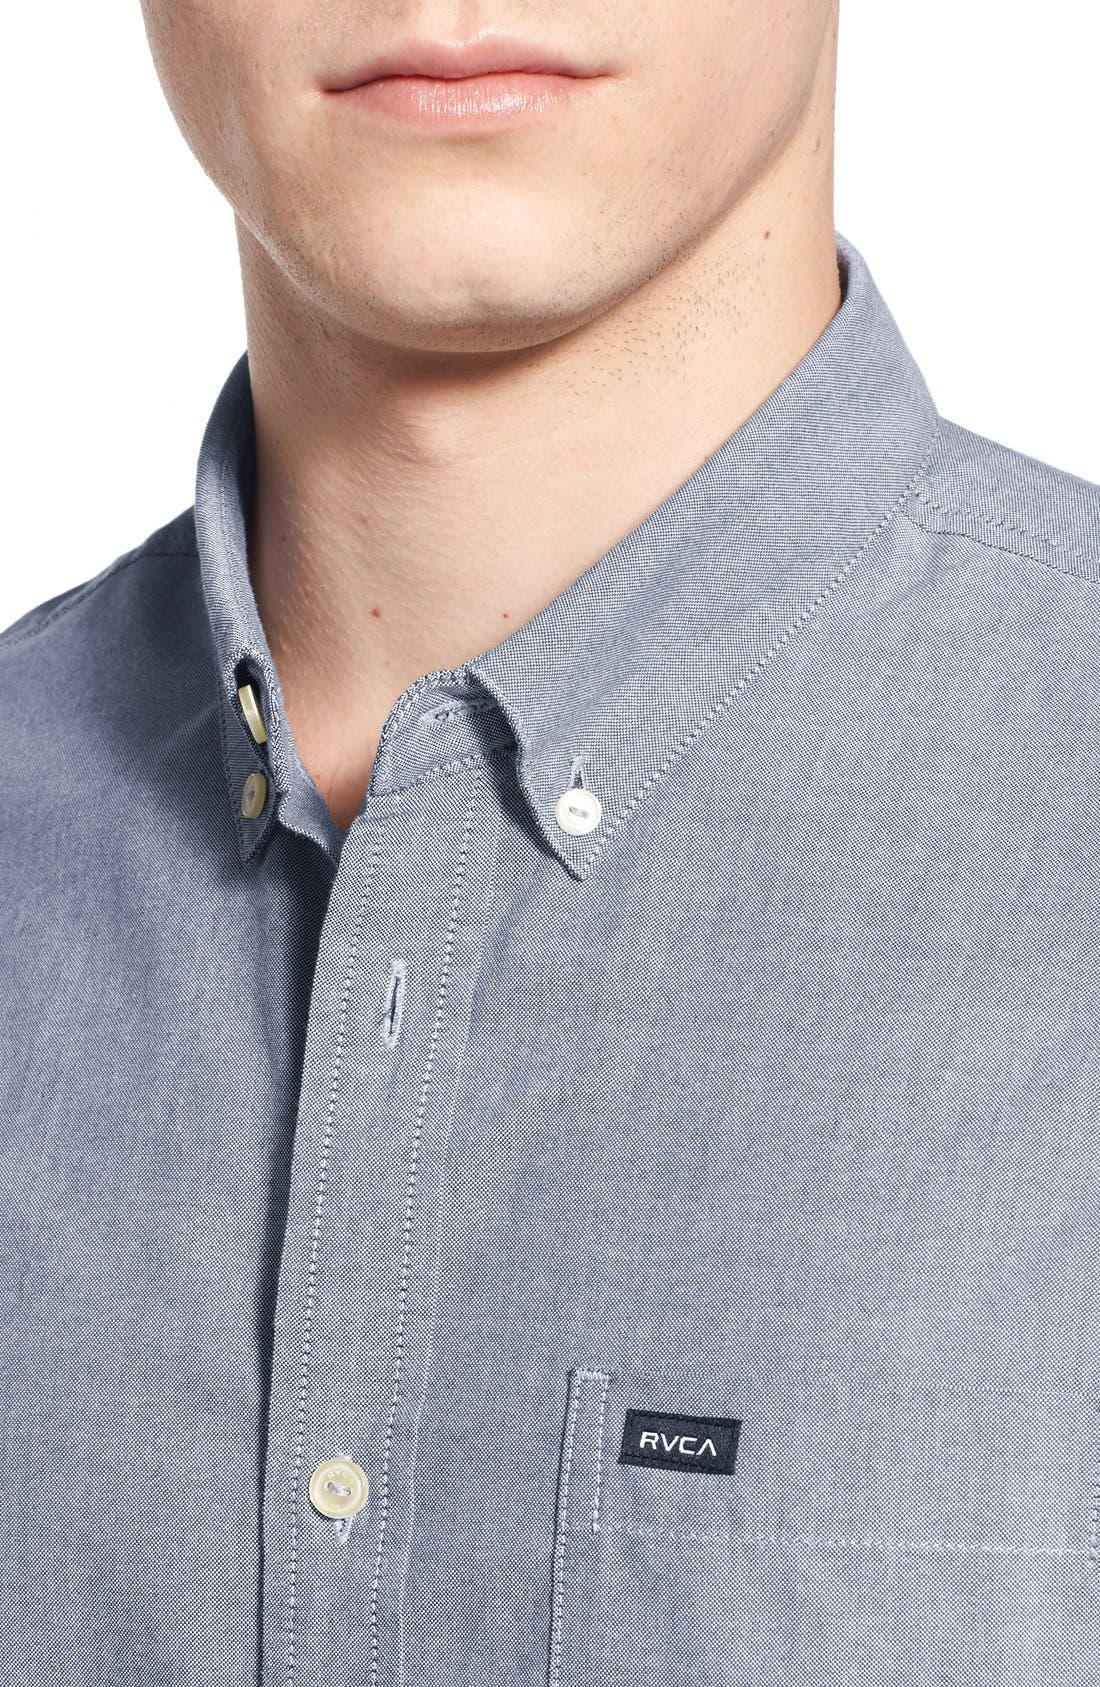 RVCA, 'That'll Do' Slim Fit Short Sleeve Oxford Shirt, Alternate thumbnail 2, color, DISTANT BLUE